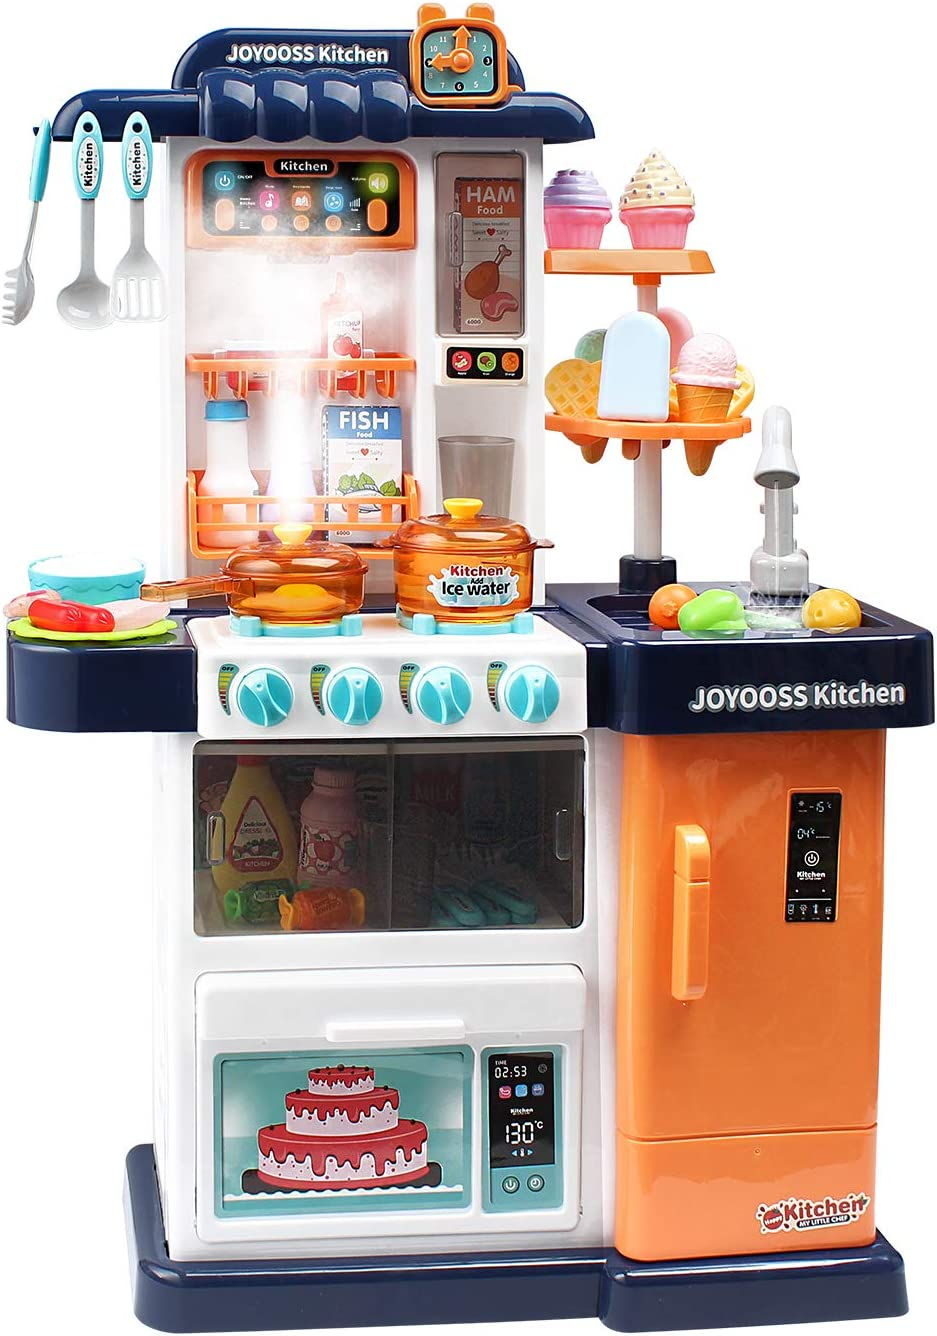 Joyooss Toy Kitchen for Toddler, 43 PCS Kids Kitchen Set with Play Sink with Running Water, Realistic Light & Sound, Temperature Sensing Play Food for Boys & Girls - Blue